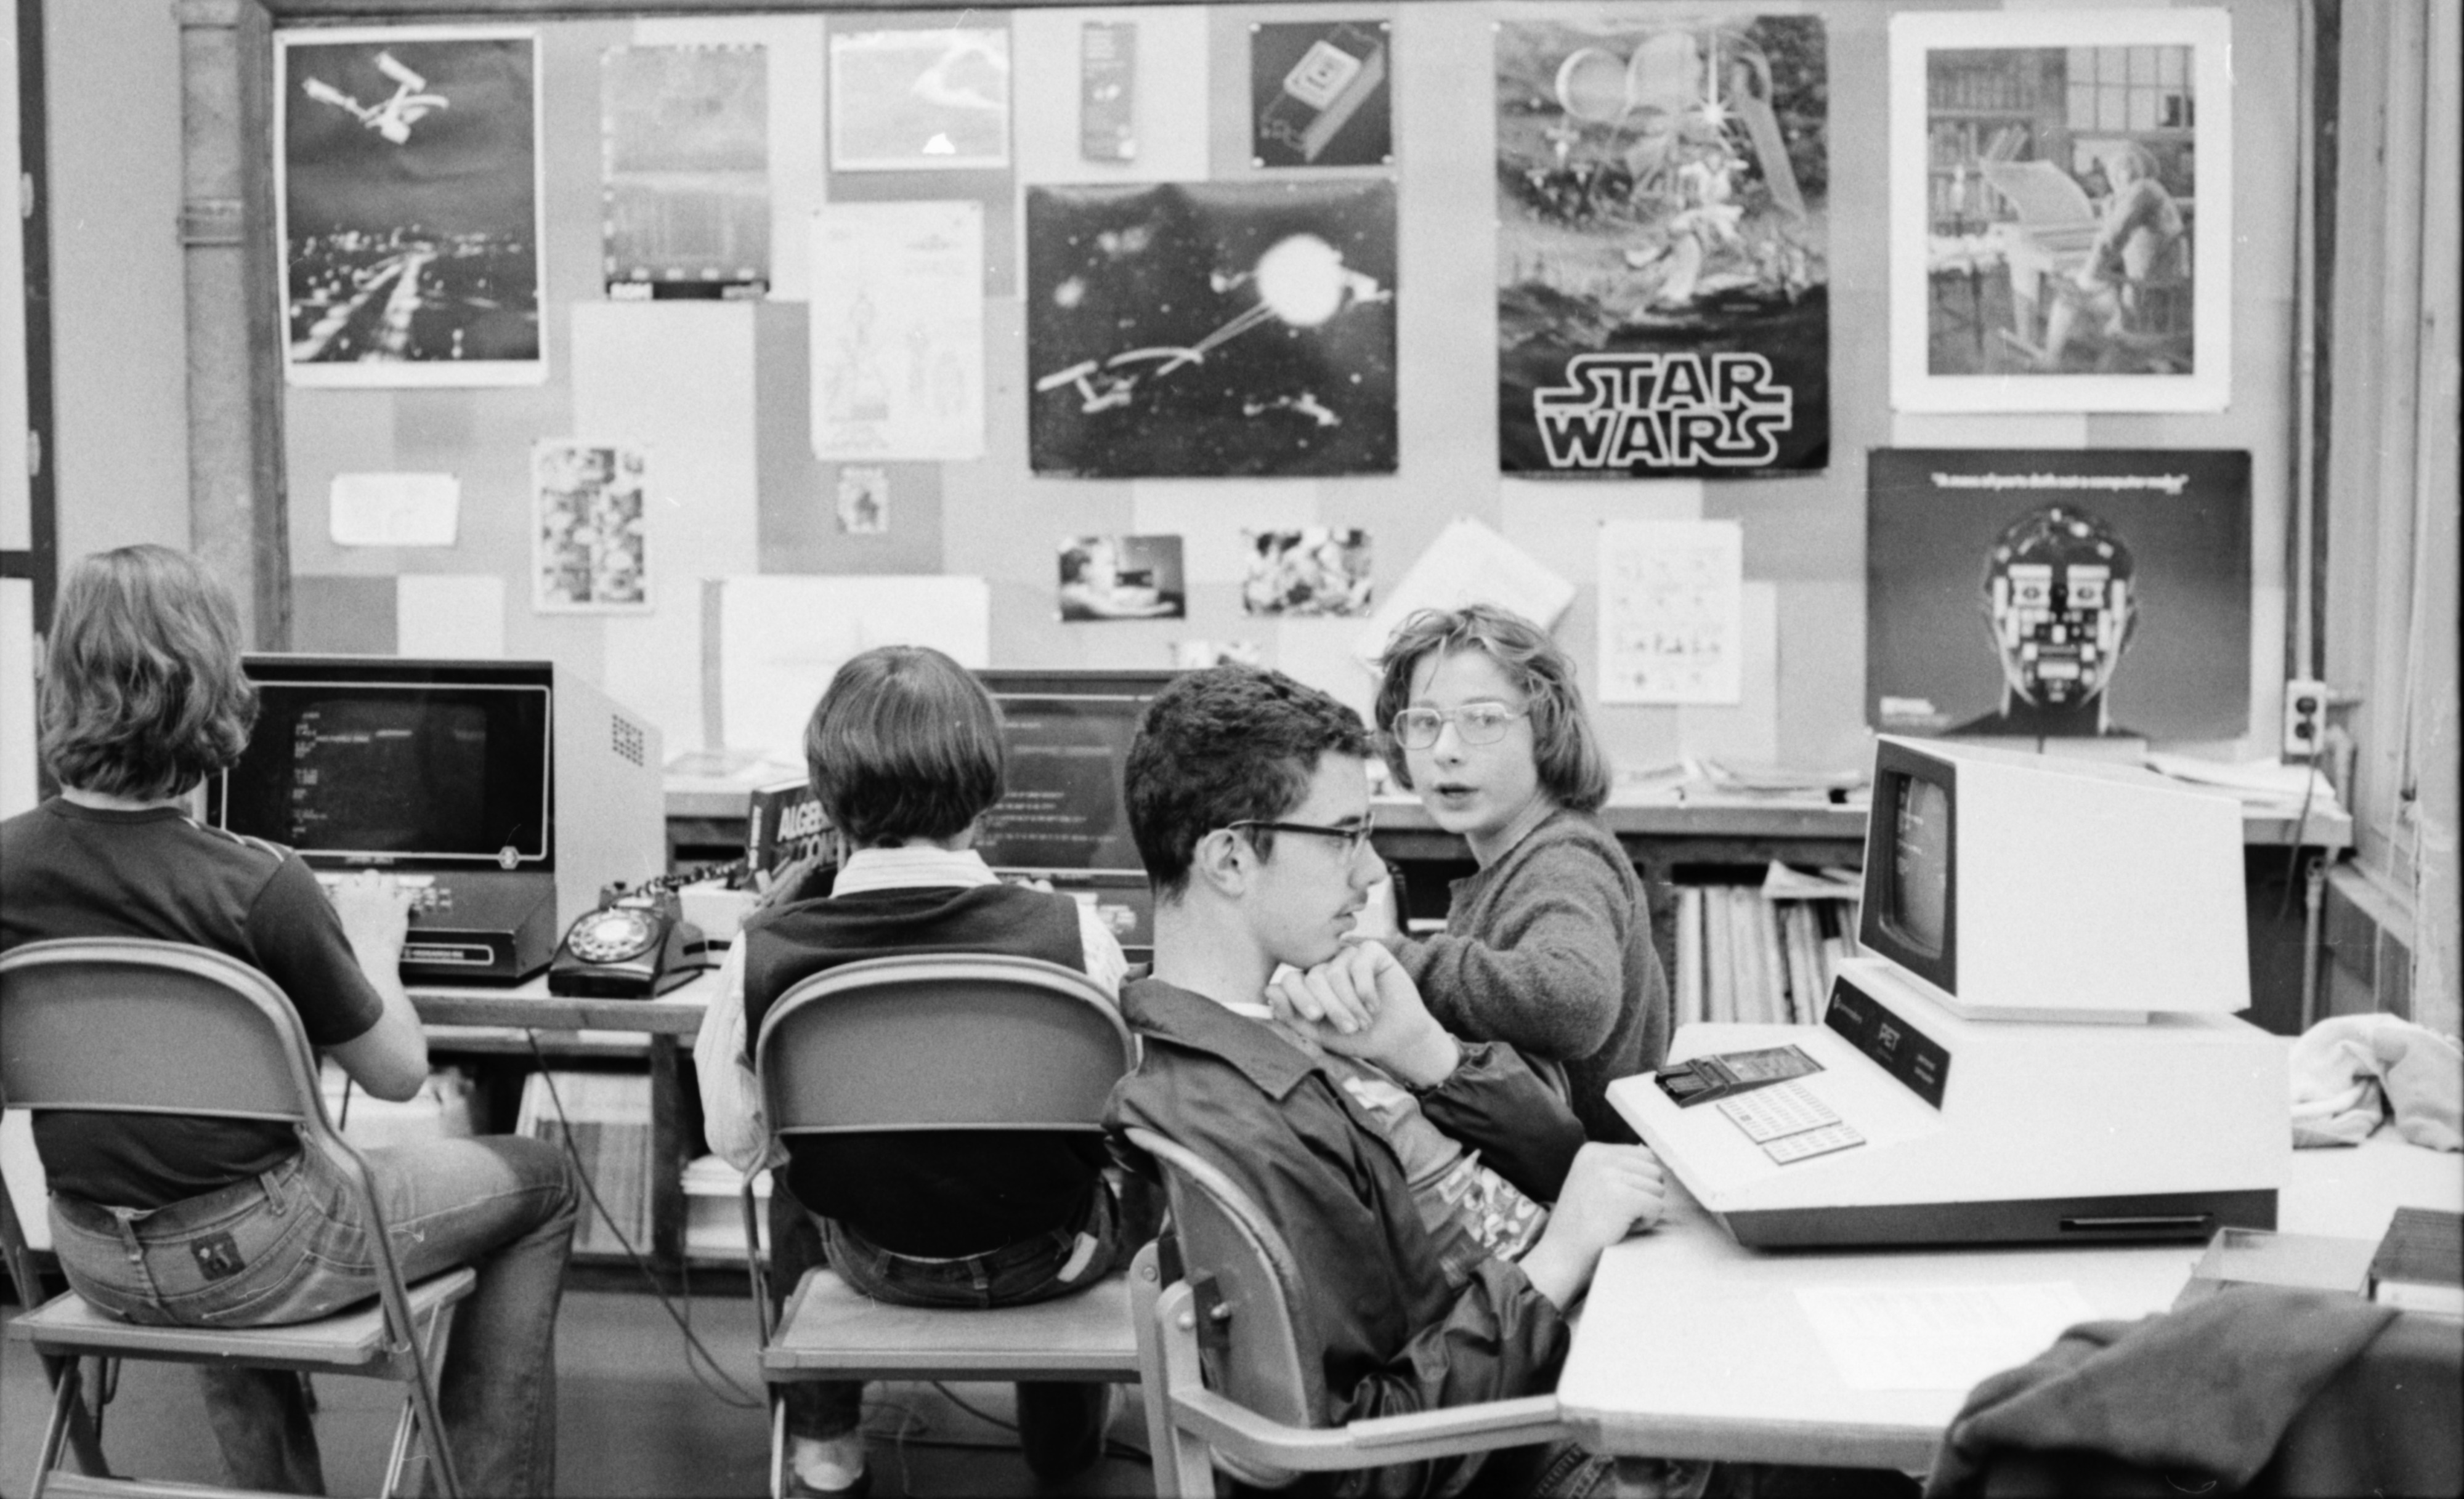 Computer class at Community High School students, 1978 image